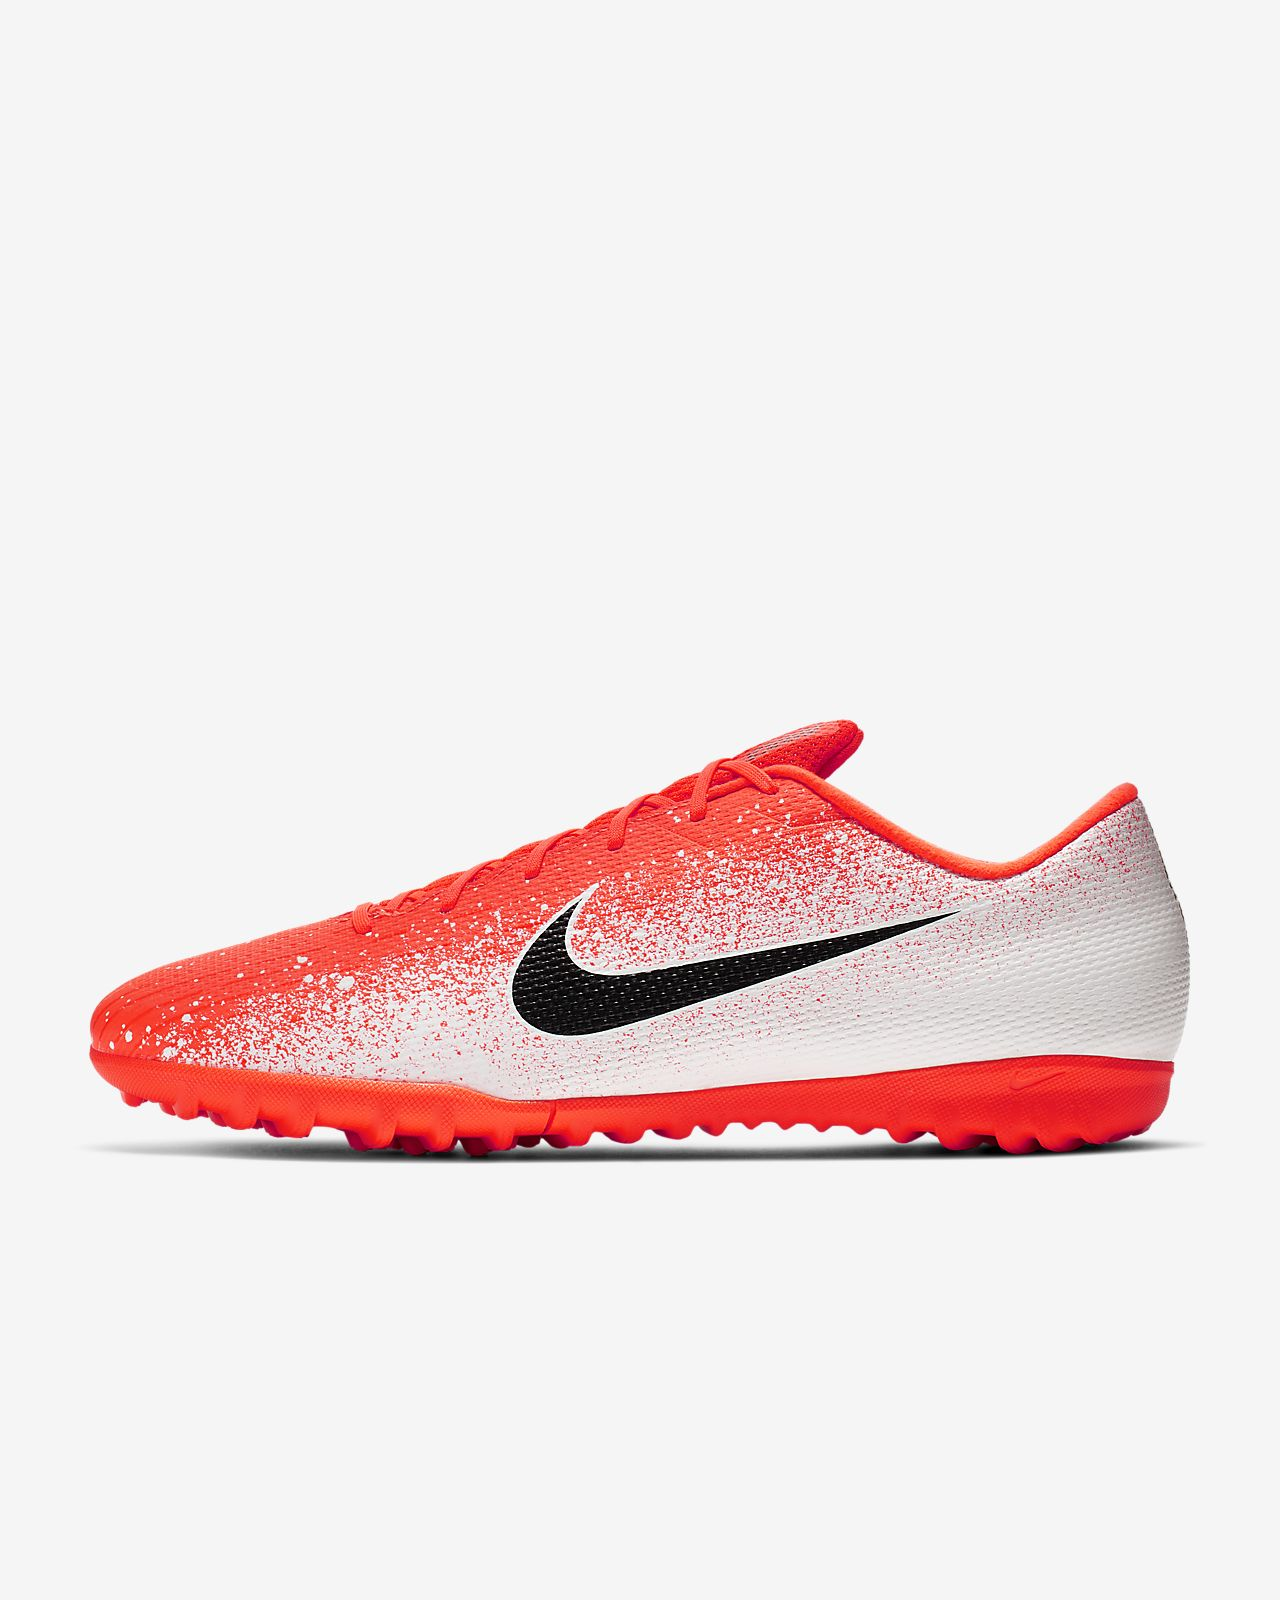 sports shoes 872ed 2a84b Nike VaporX 12 Academy TF Artificial-Turf Football Boot